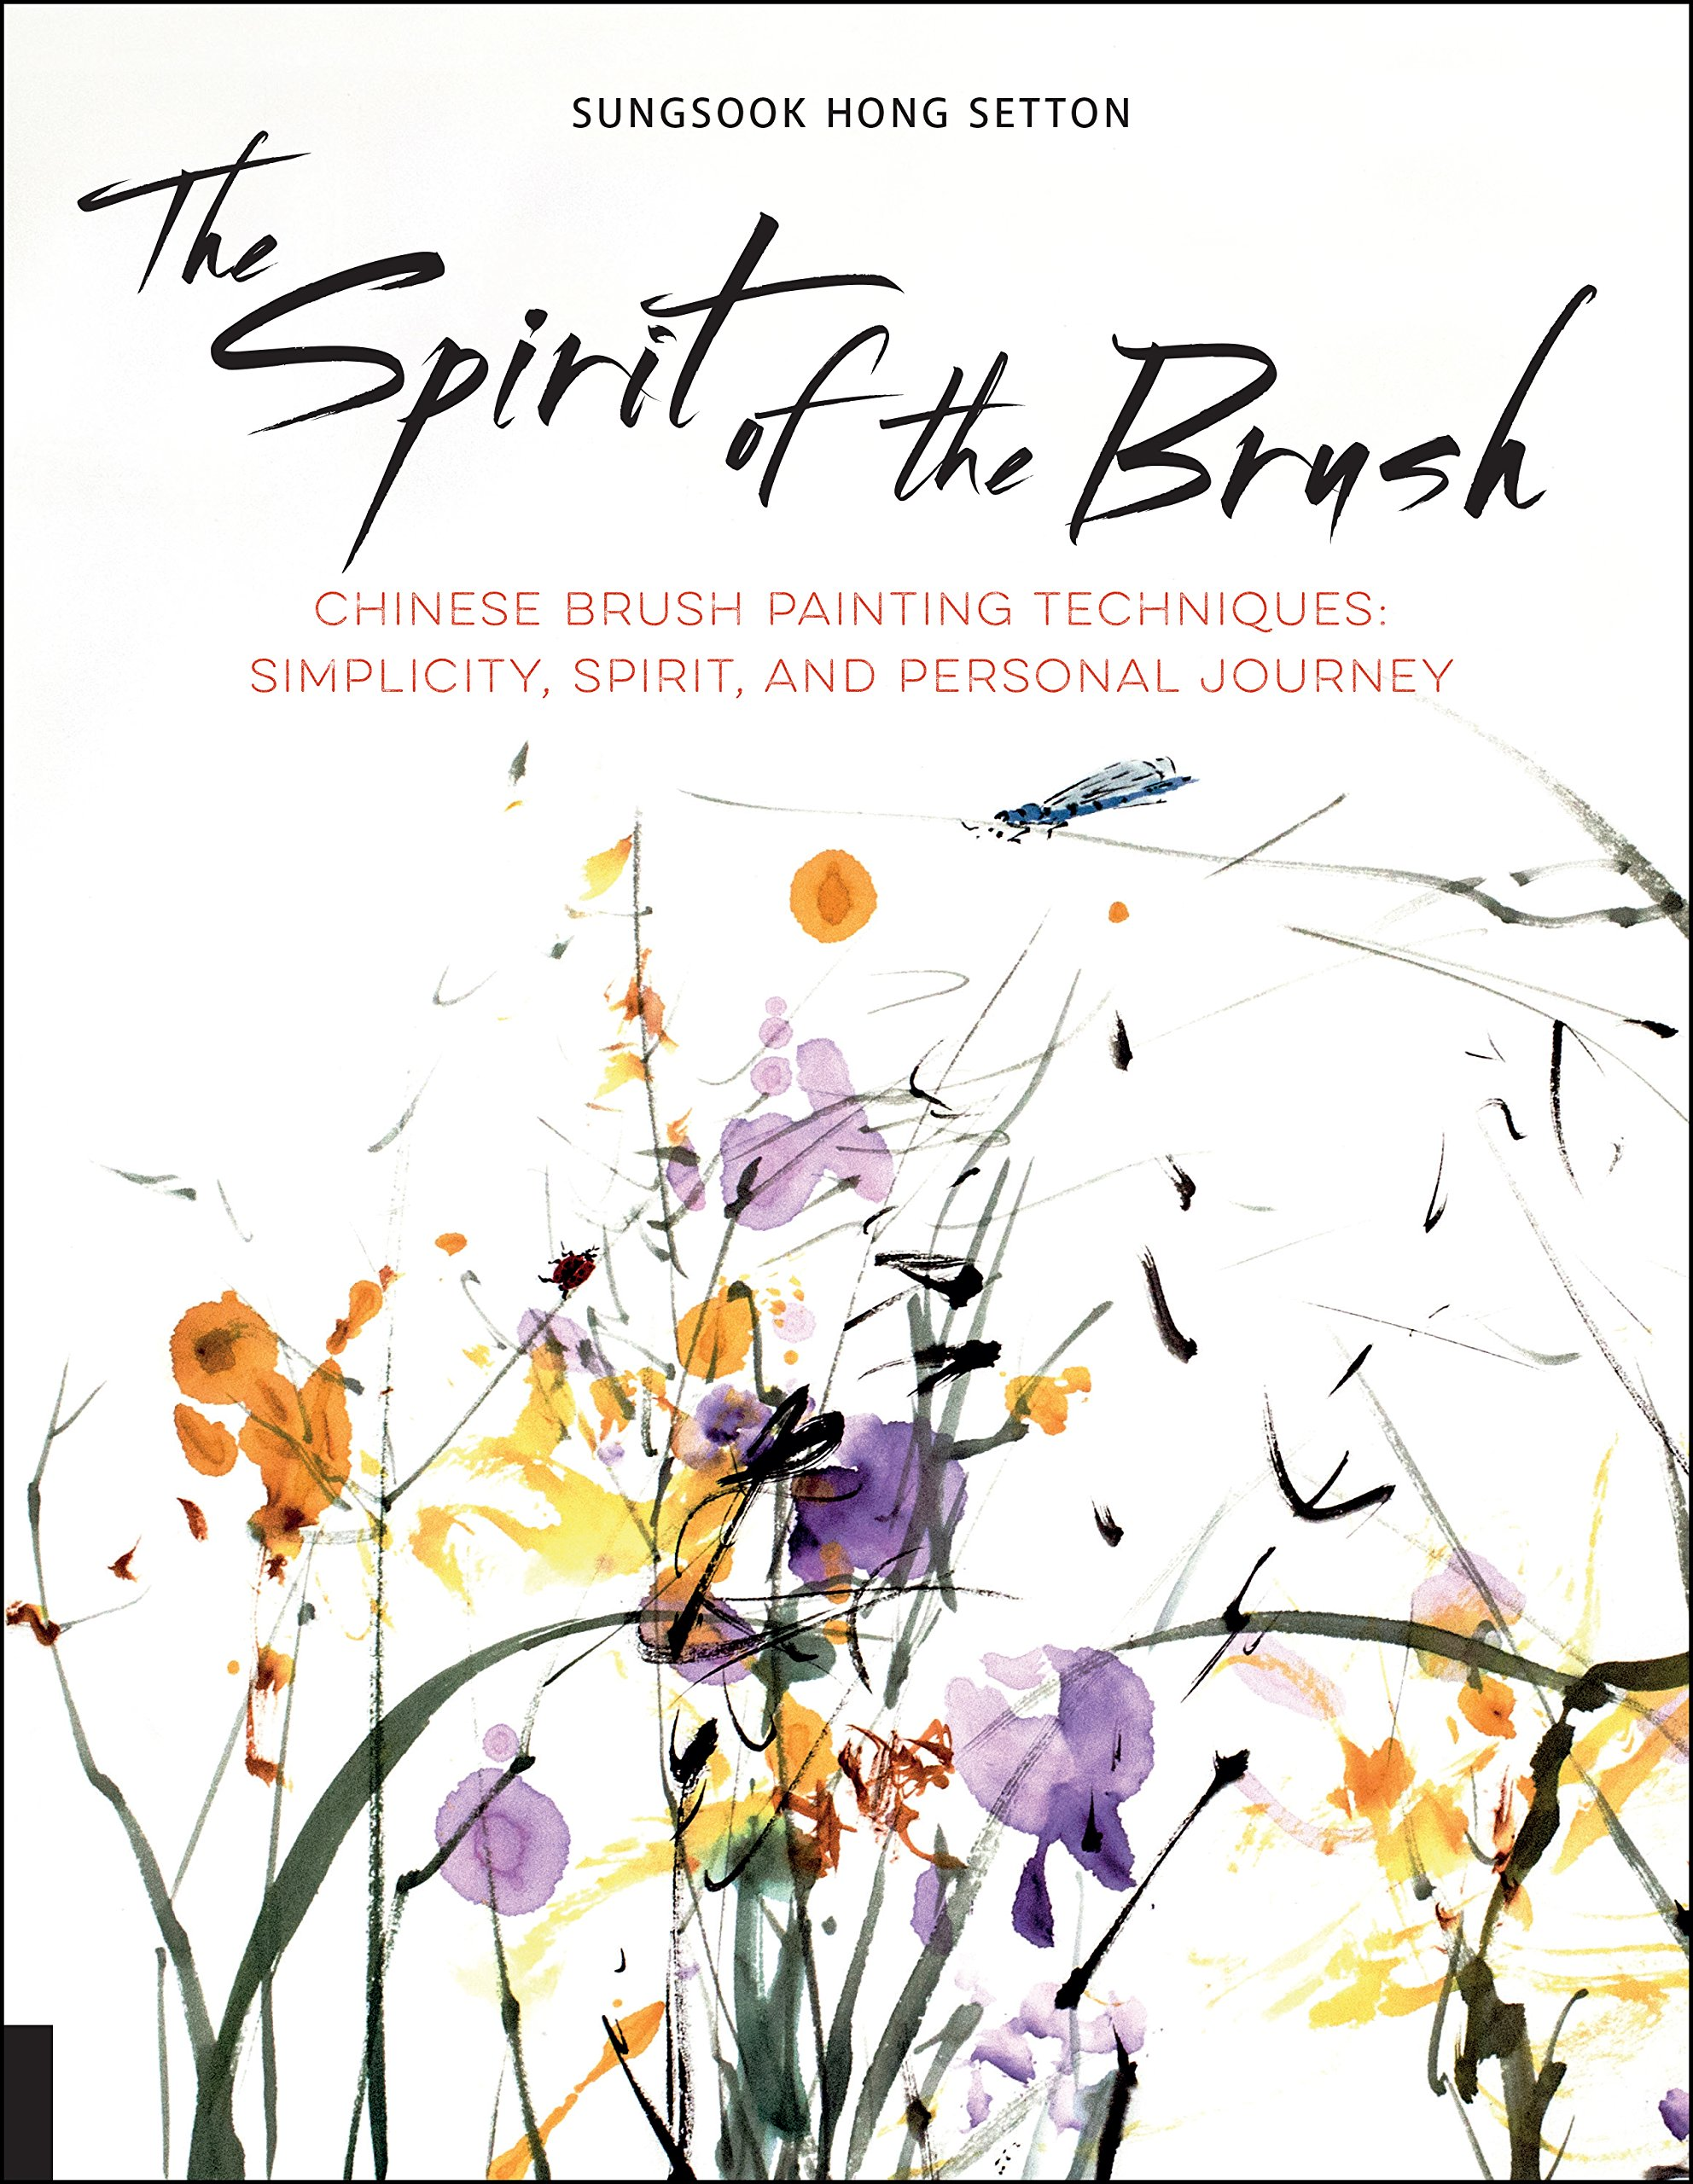 The Spirit of the Brush: Chinese Brush Painting Techniques: Simplicity,  Spirit, and Personal Journey: Amazon.co.uk: Sungsook Hong Setton:  9781631592904: ...